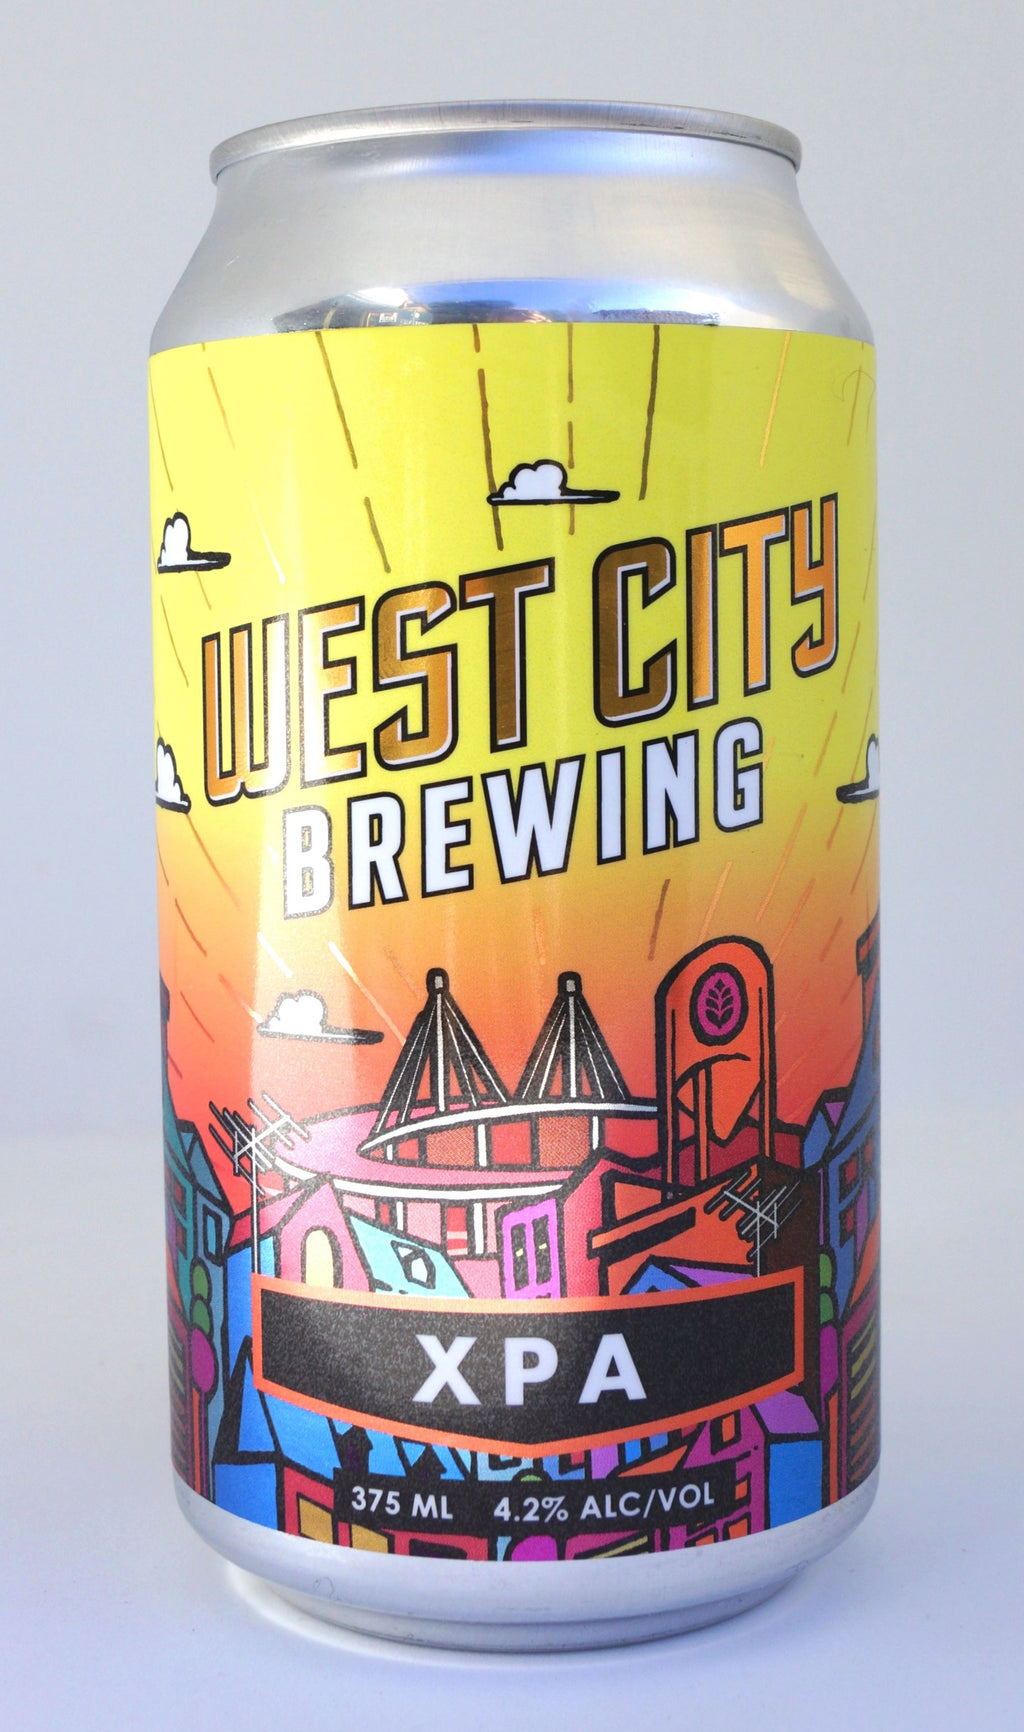 West City Brewing XPA